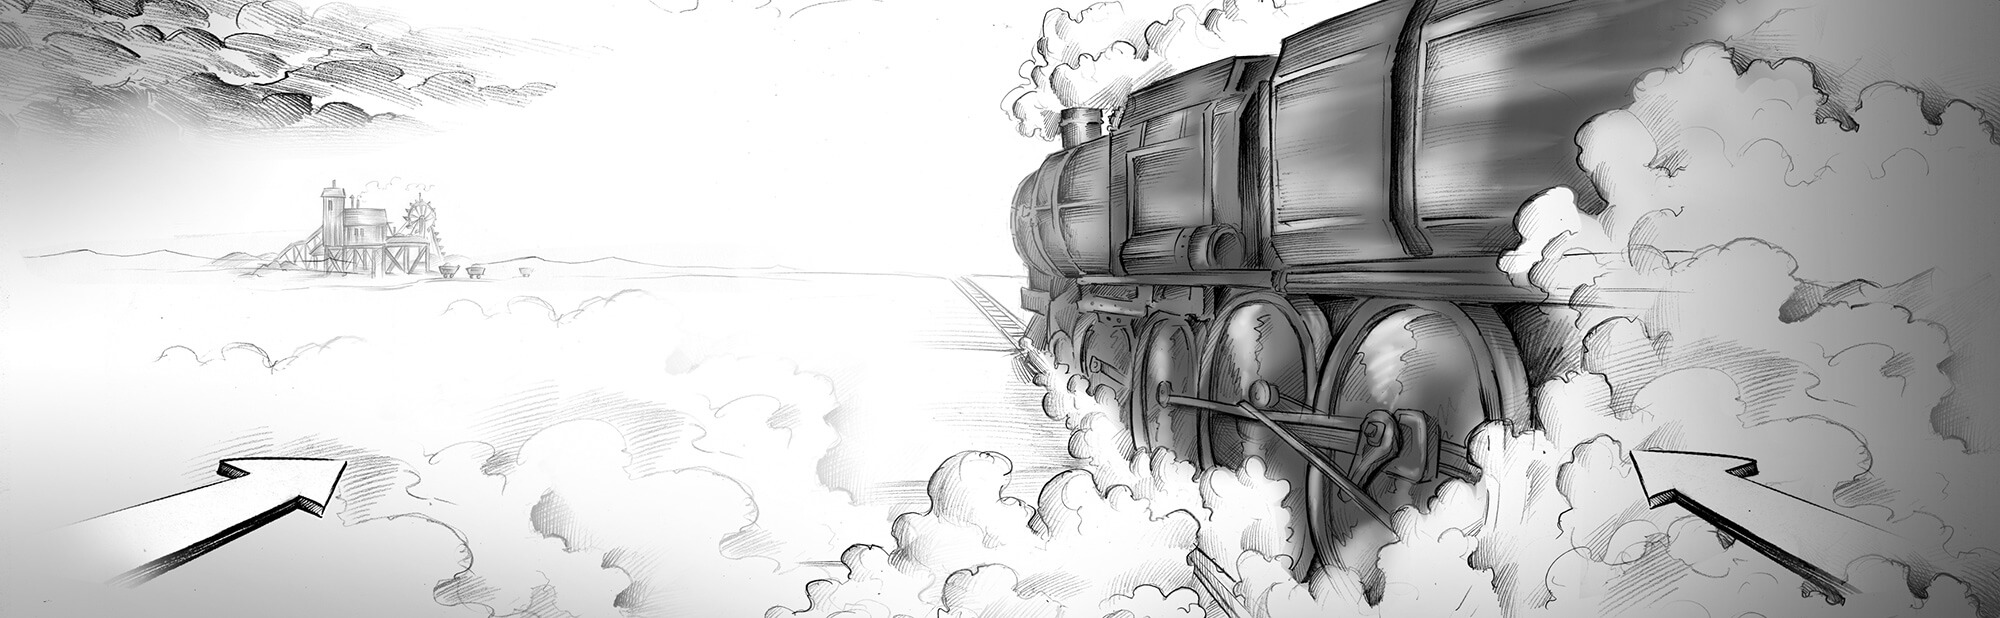 Locomotive_3_Webt